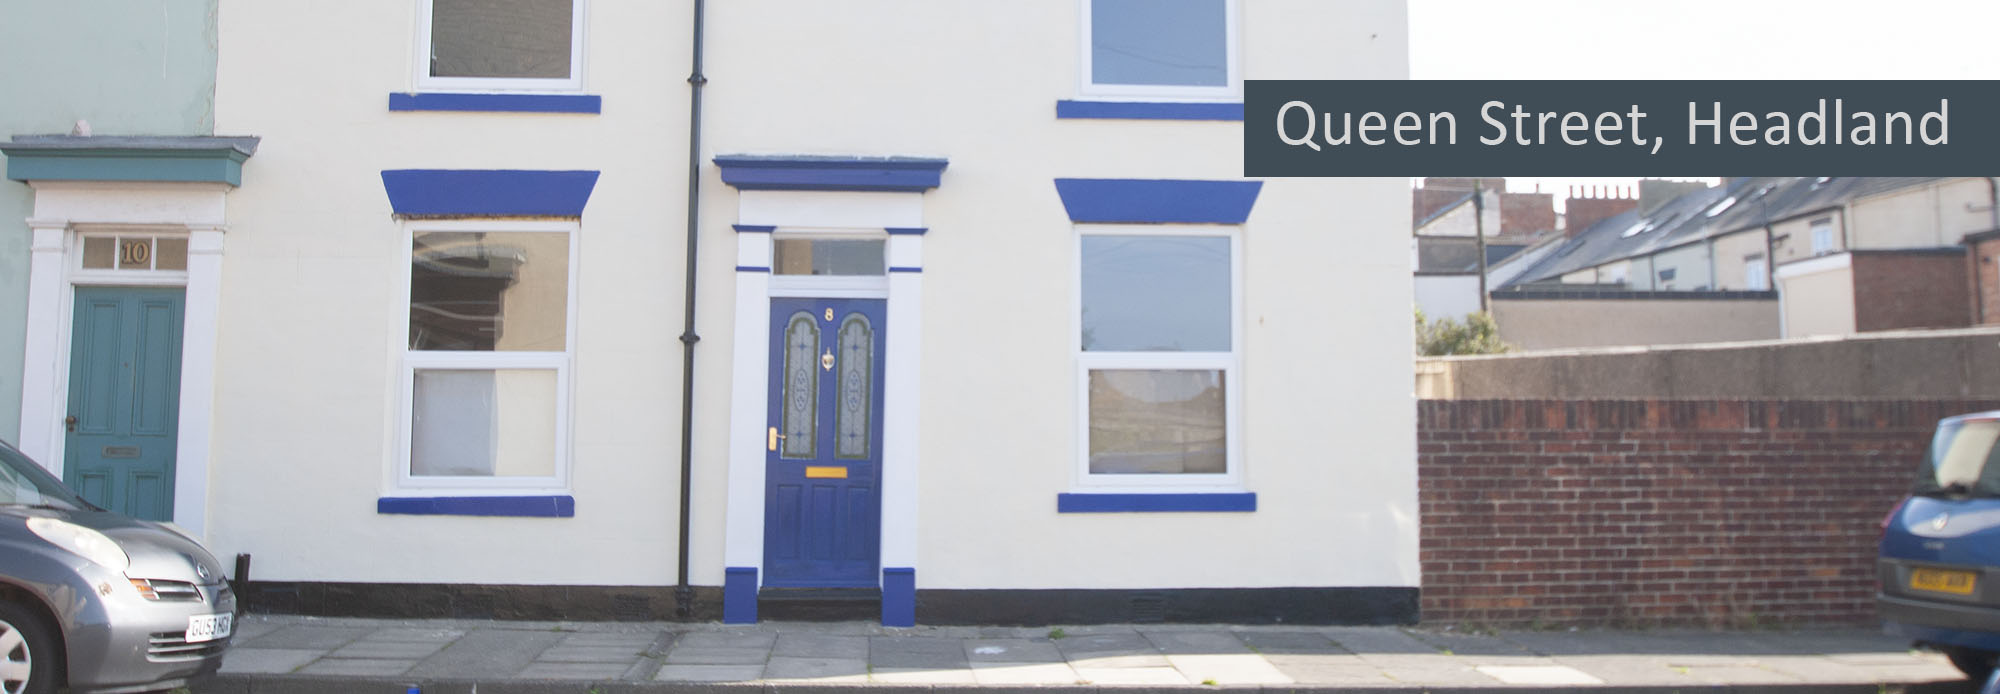 Queen Street The Headland Hartlepool OIRO £112,000